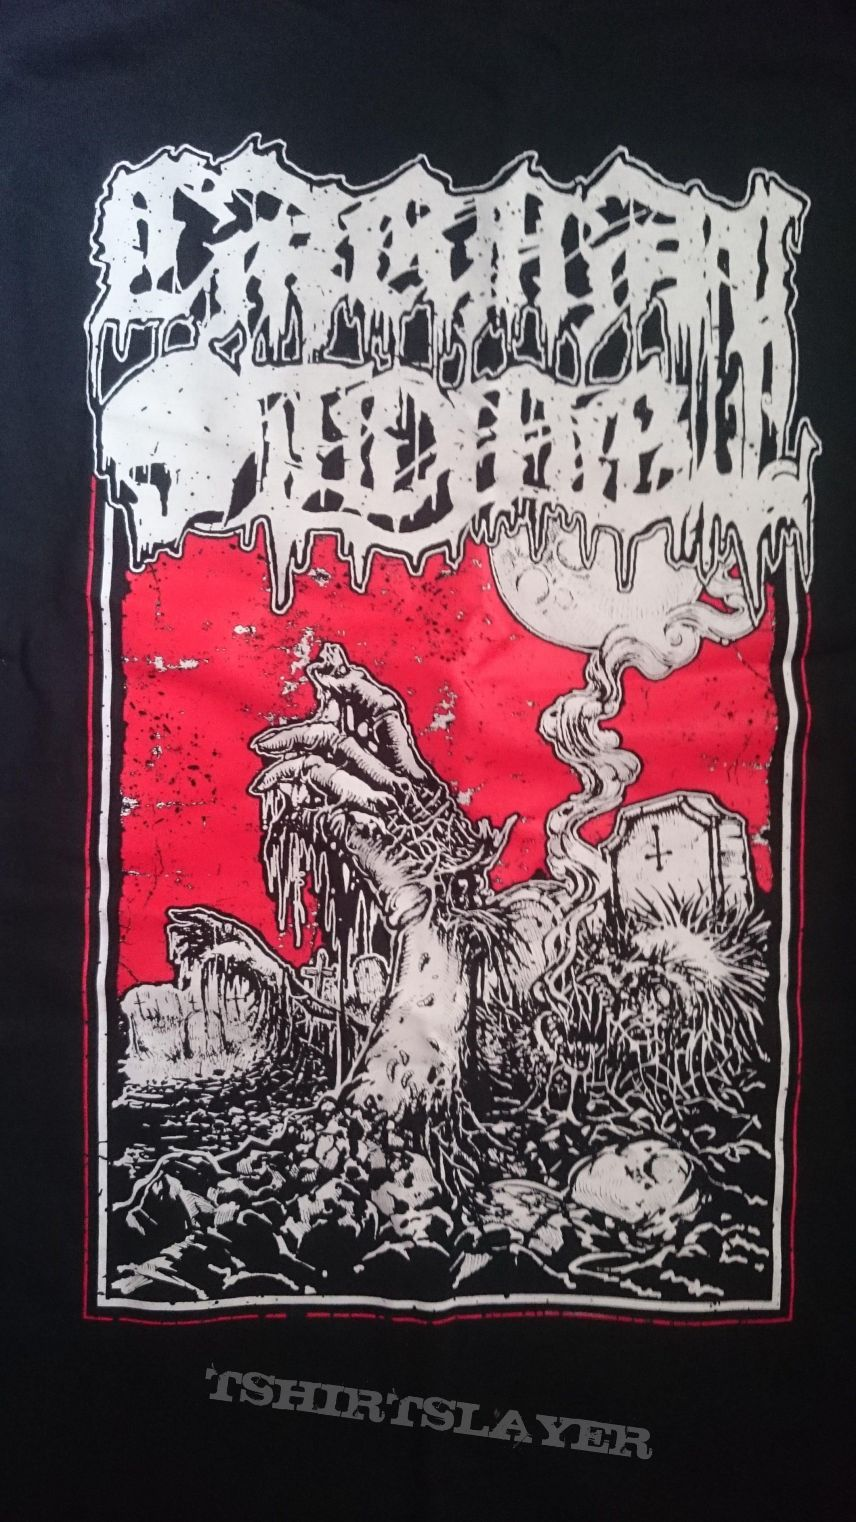 Carnal Tomb - Undead Dread / Creeping From Their Graves At Night Longsleeve